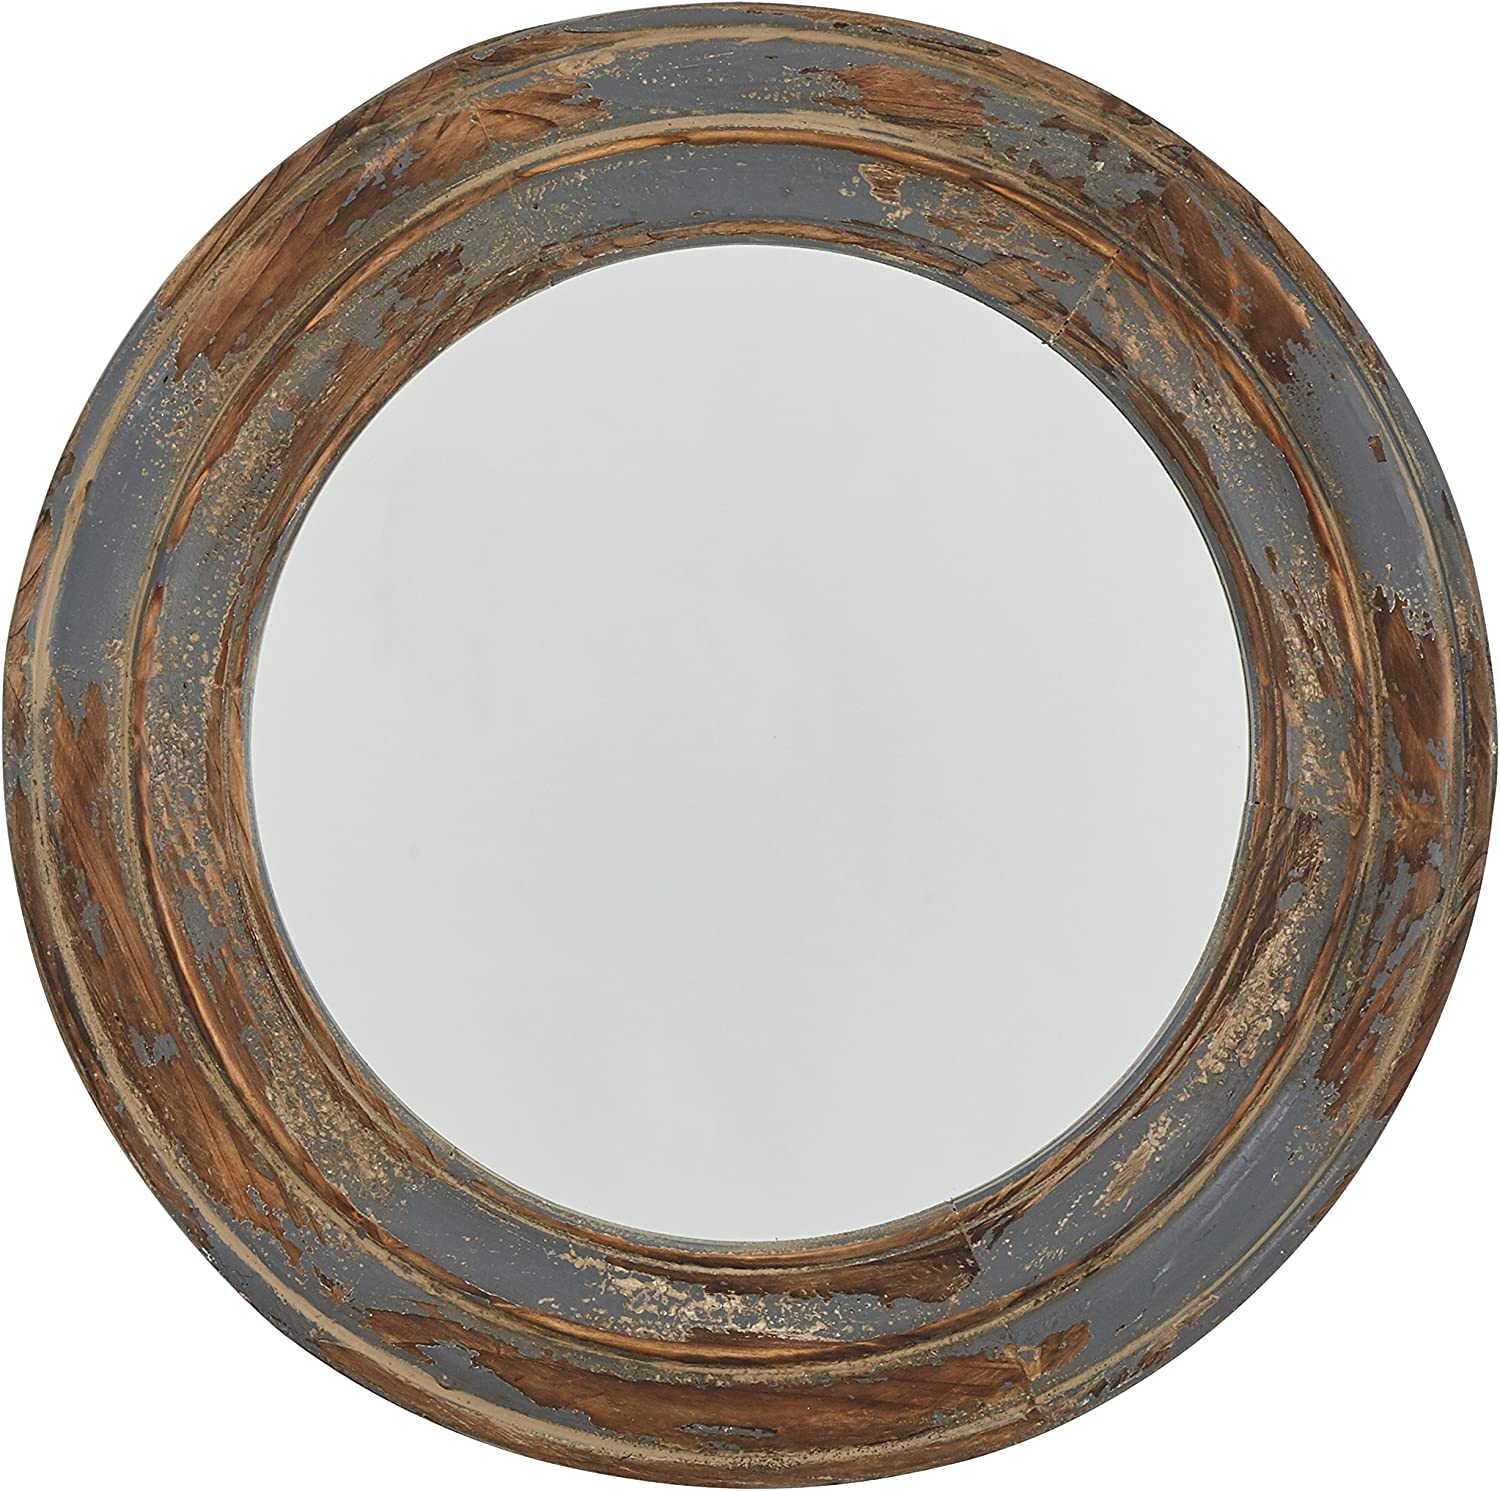 Stone & Beam Round Distressed Rustic Wood Hanging Wall Mirror